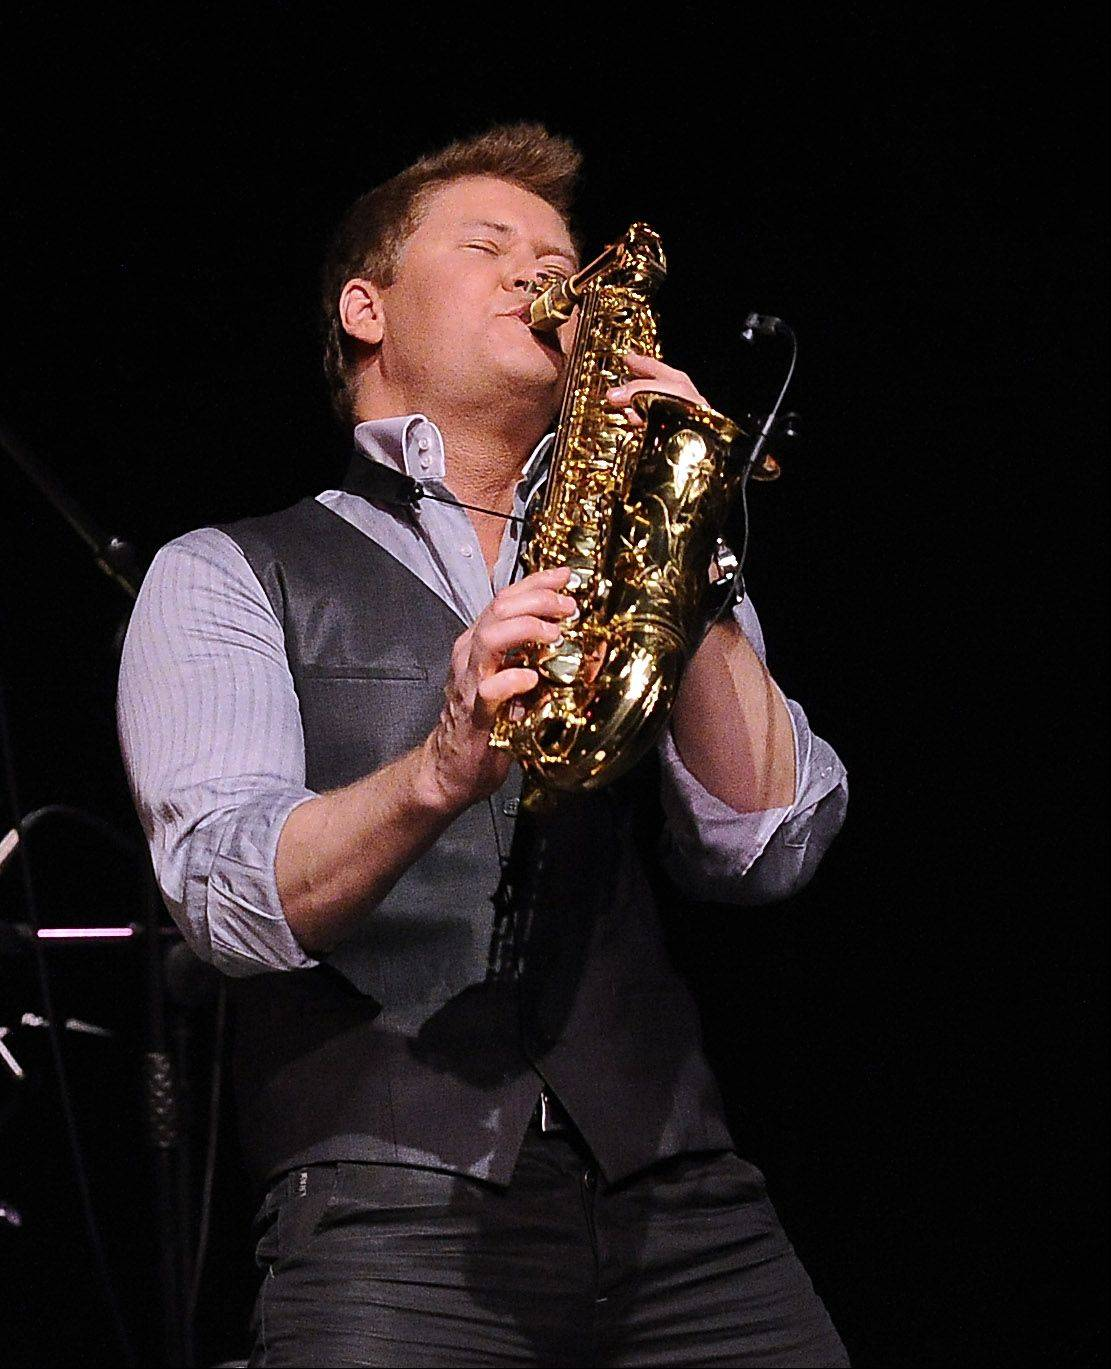 Michael Lington and his saxophone raise the roof as he plays the song Playtime from his new album Pure for the packed house at Schaumburg's Prairie Center on Saturday.